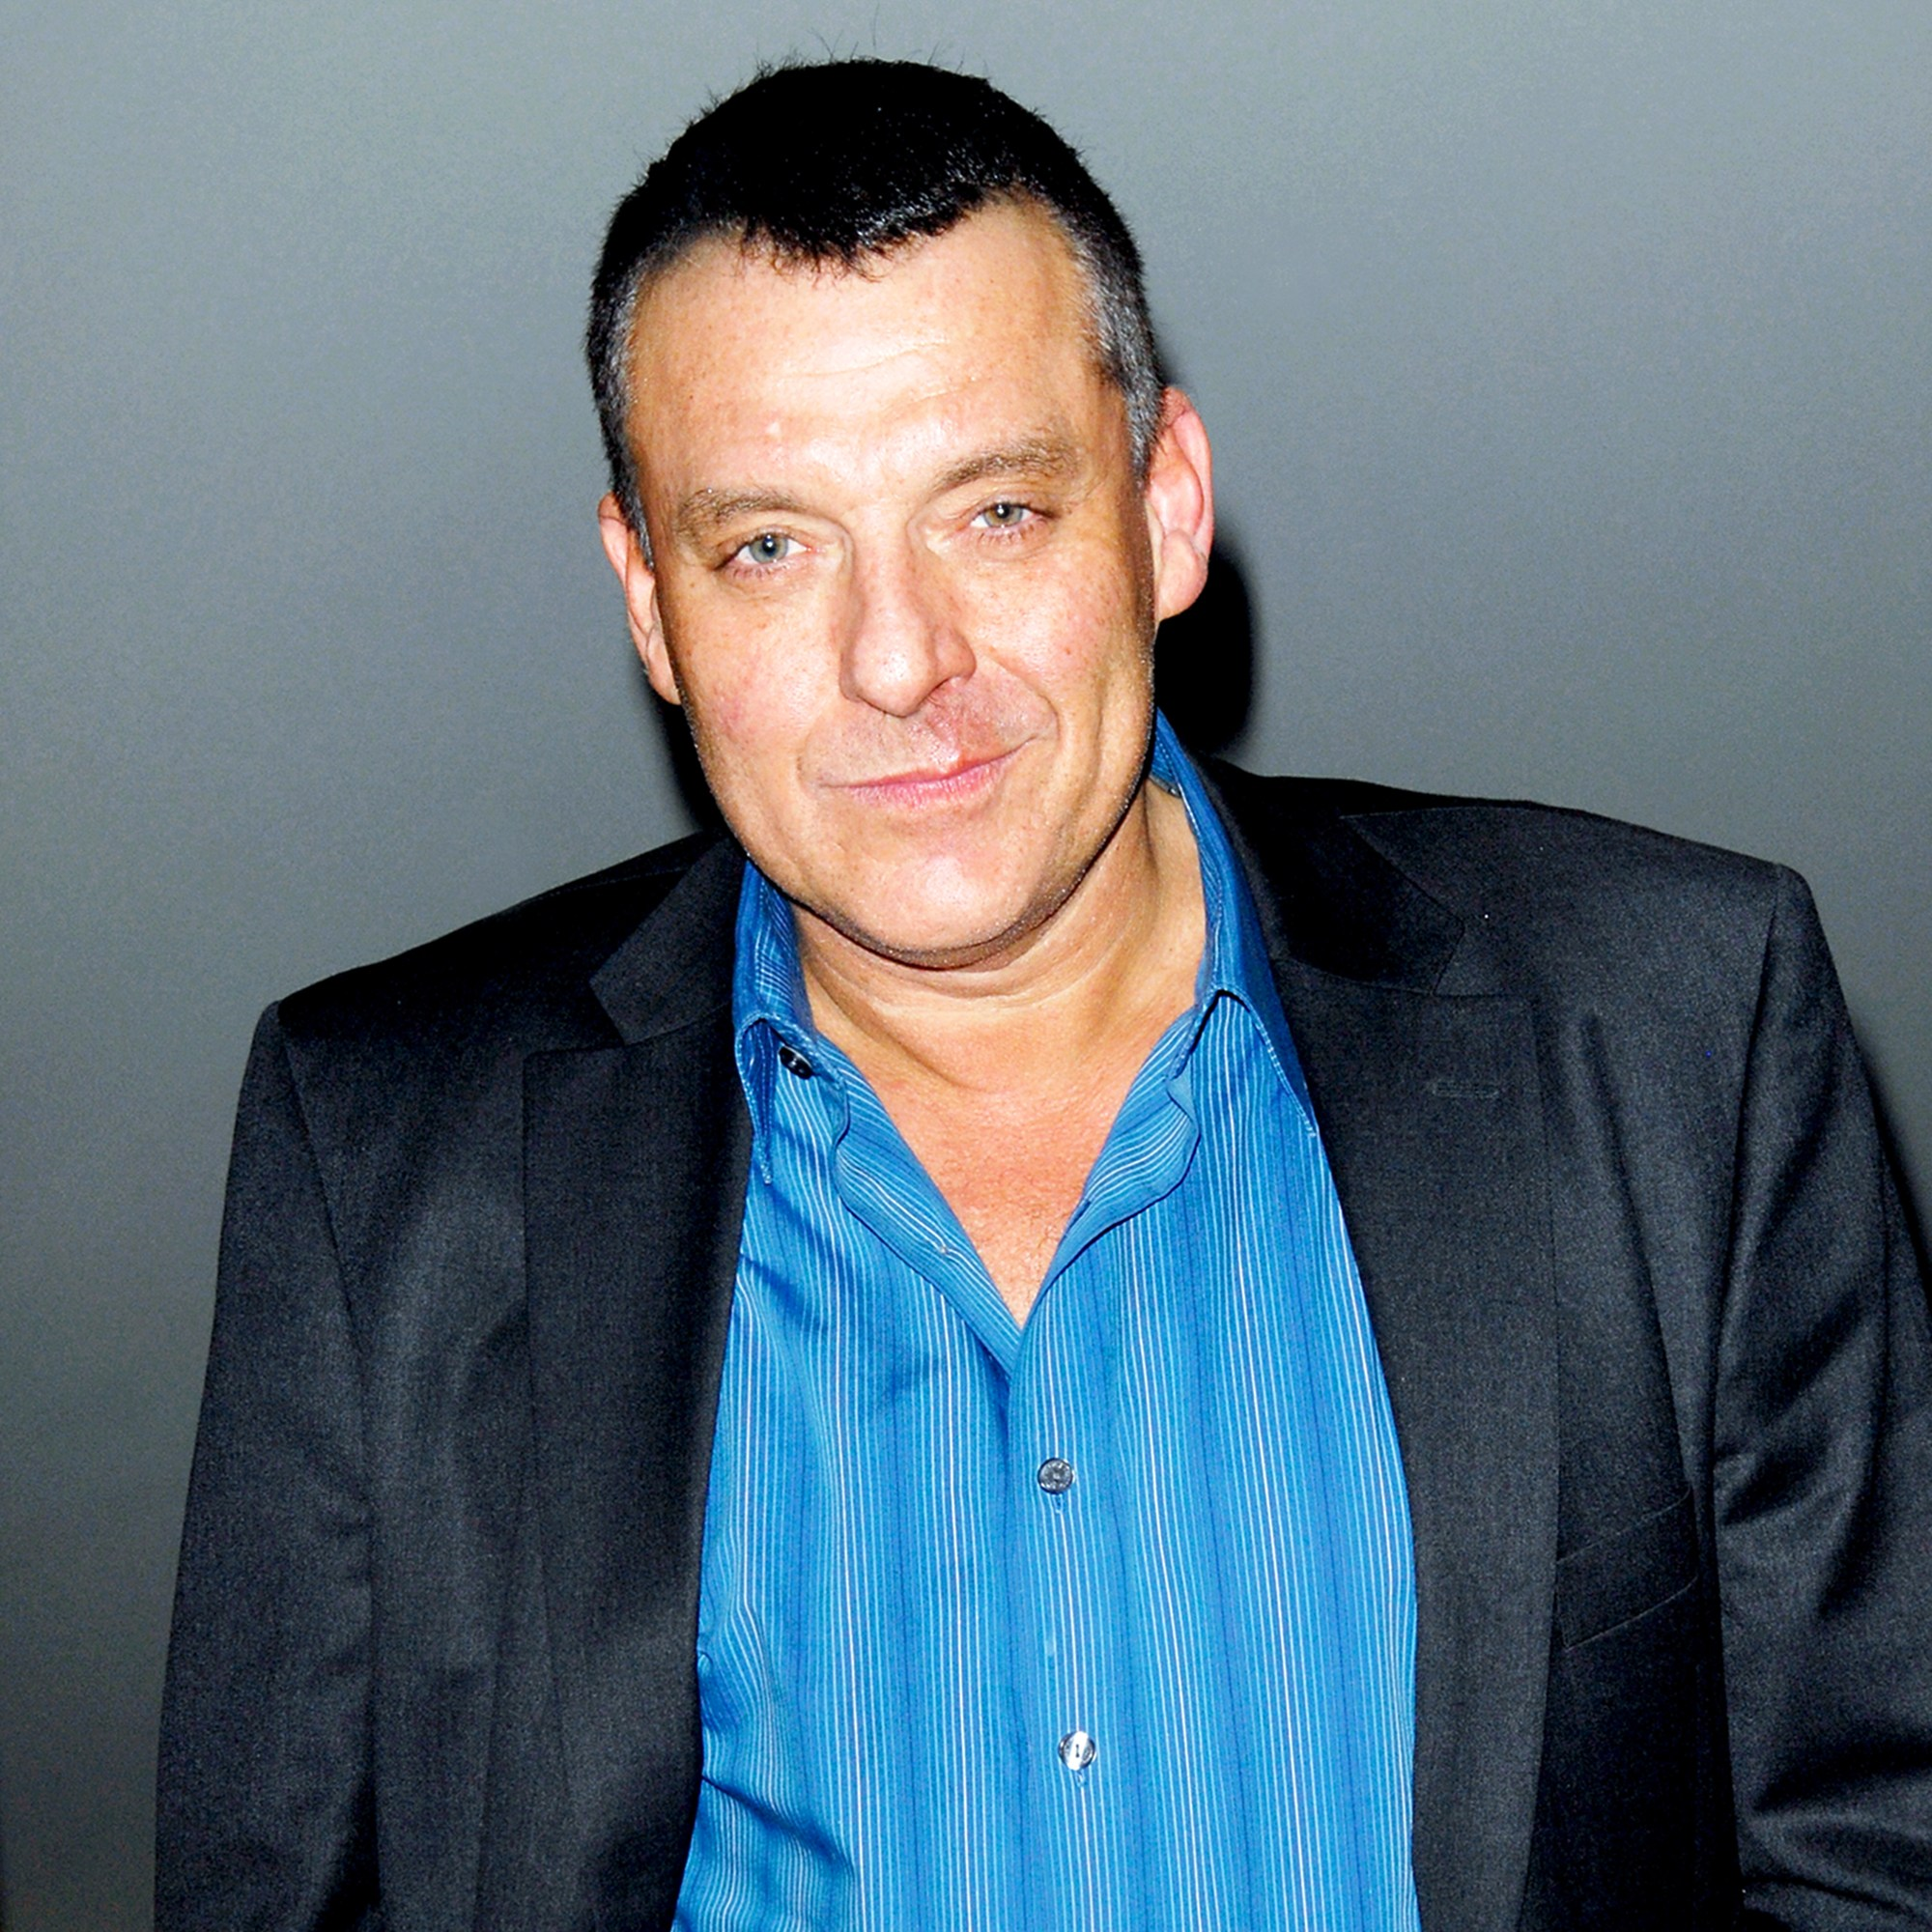 """Tom Sizemore attends the """"Genius On Hold"""" screening and Q&A at Landmark Nuart Theatre in Los Angeles, California."""